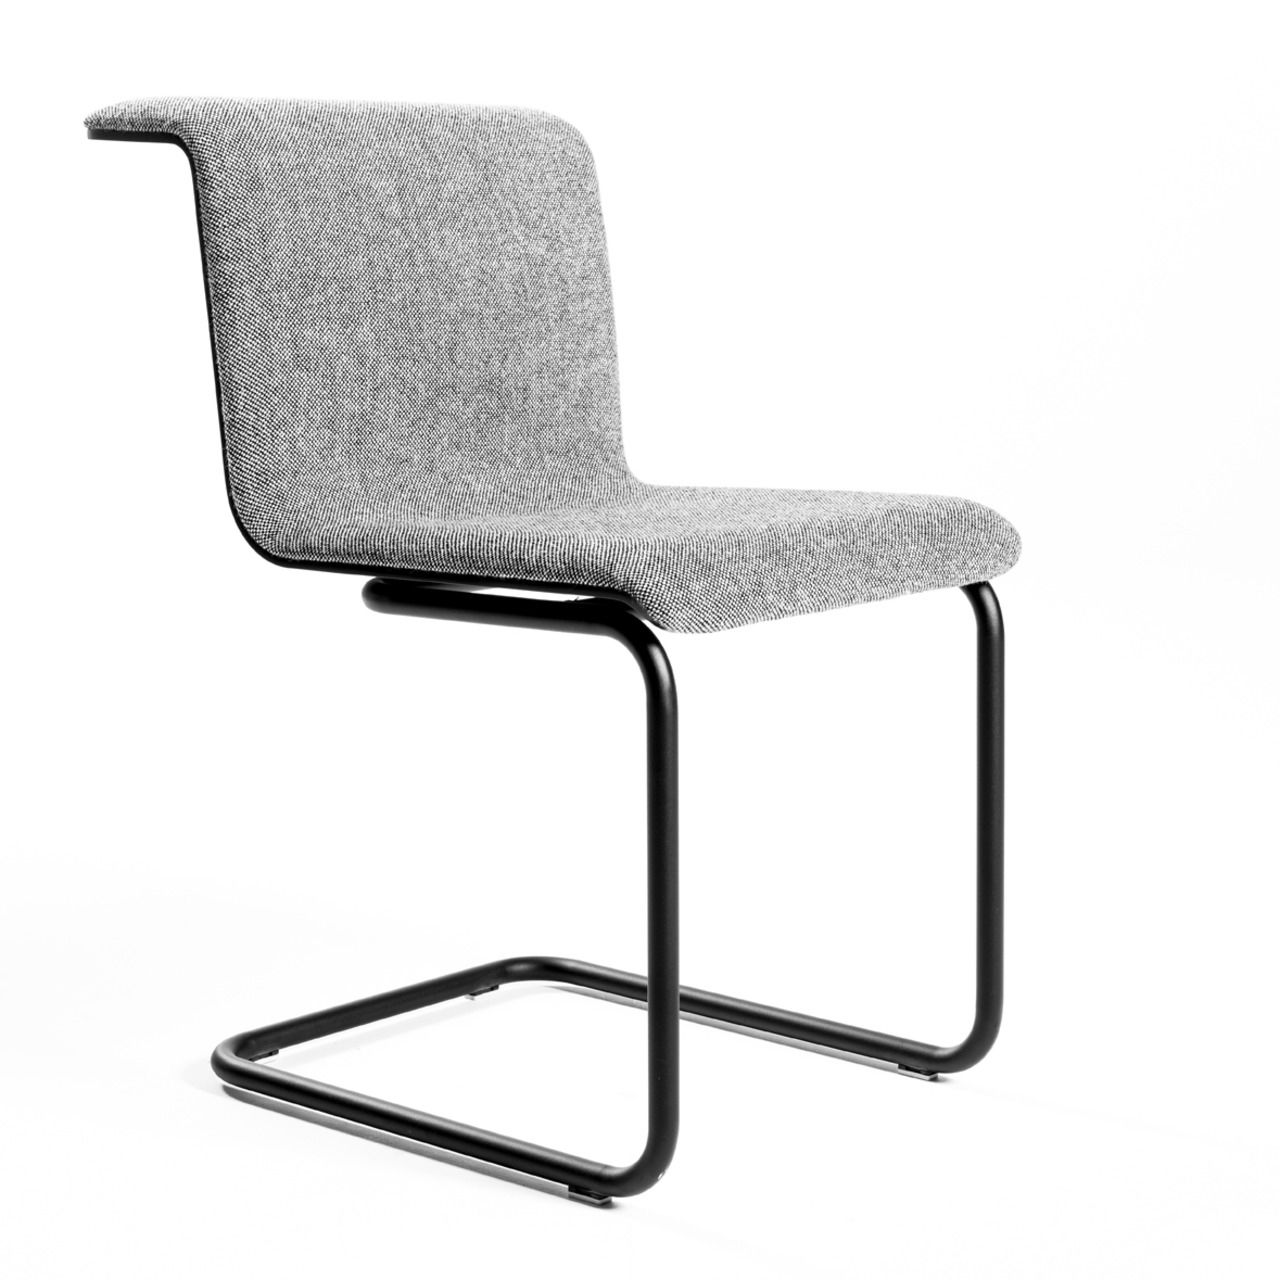 Merveilleux Contemporary Chair / Upholstered / Sled Base / Fabric   TAB By Alain Berteau